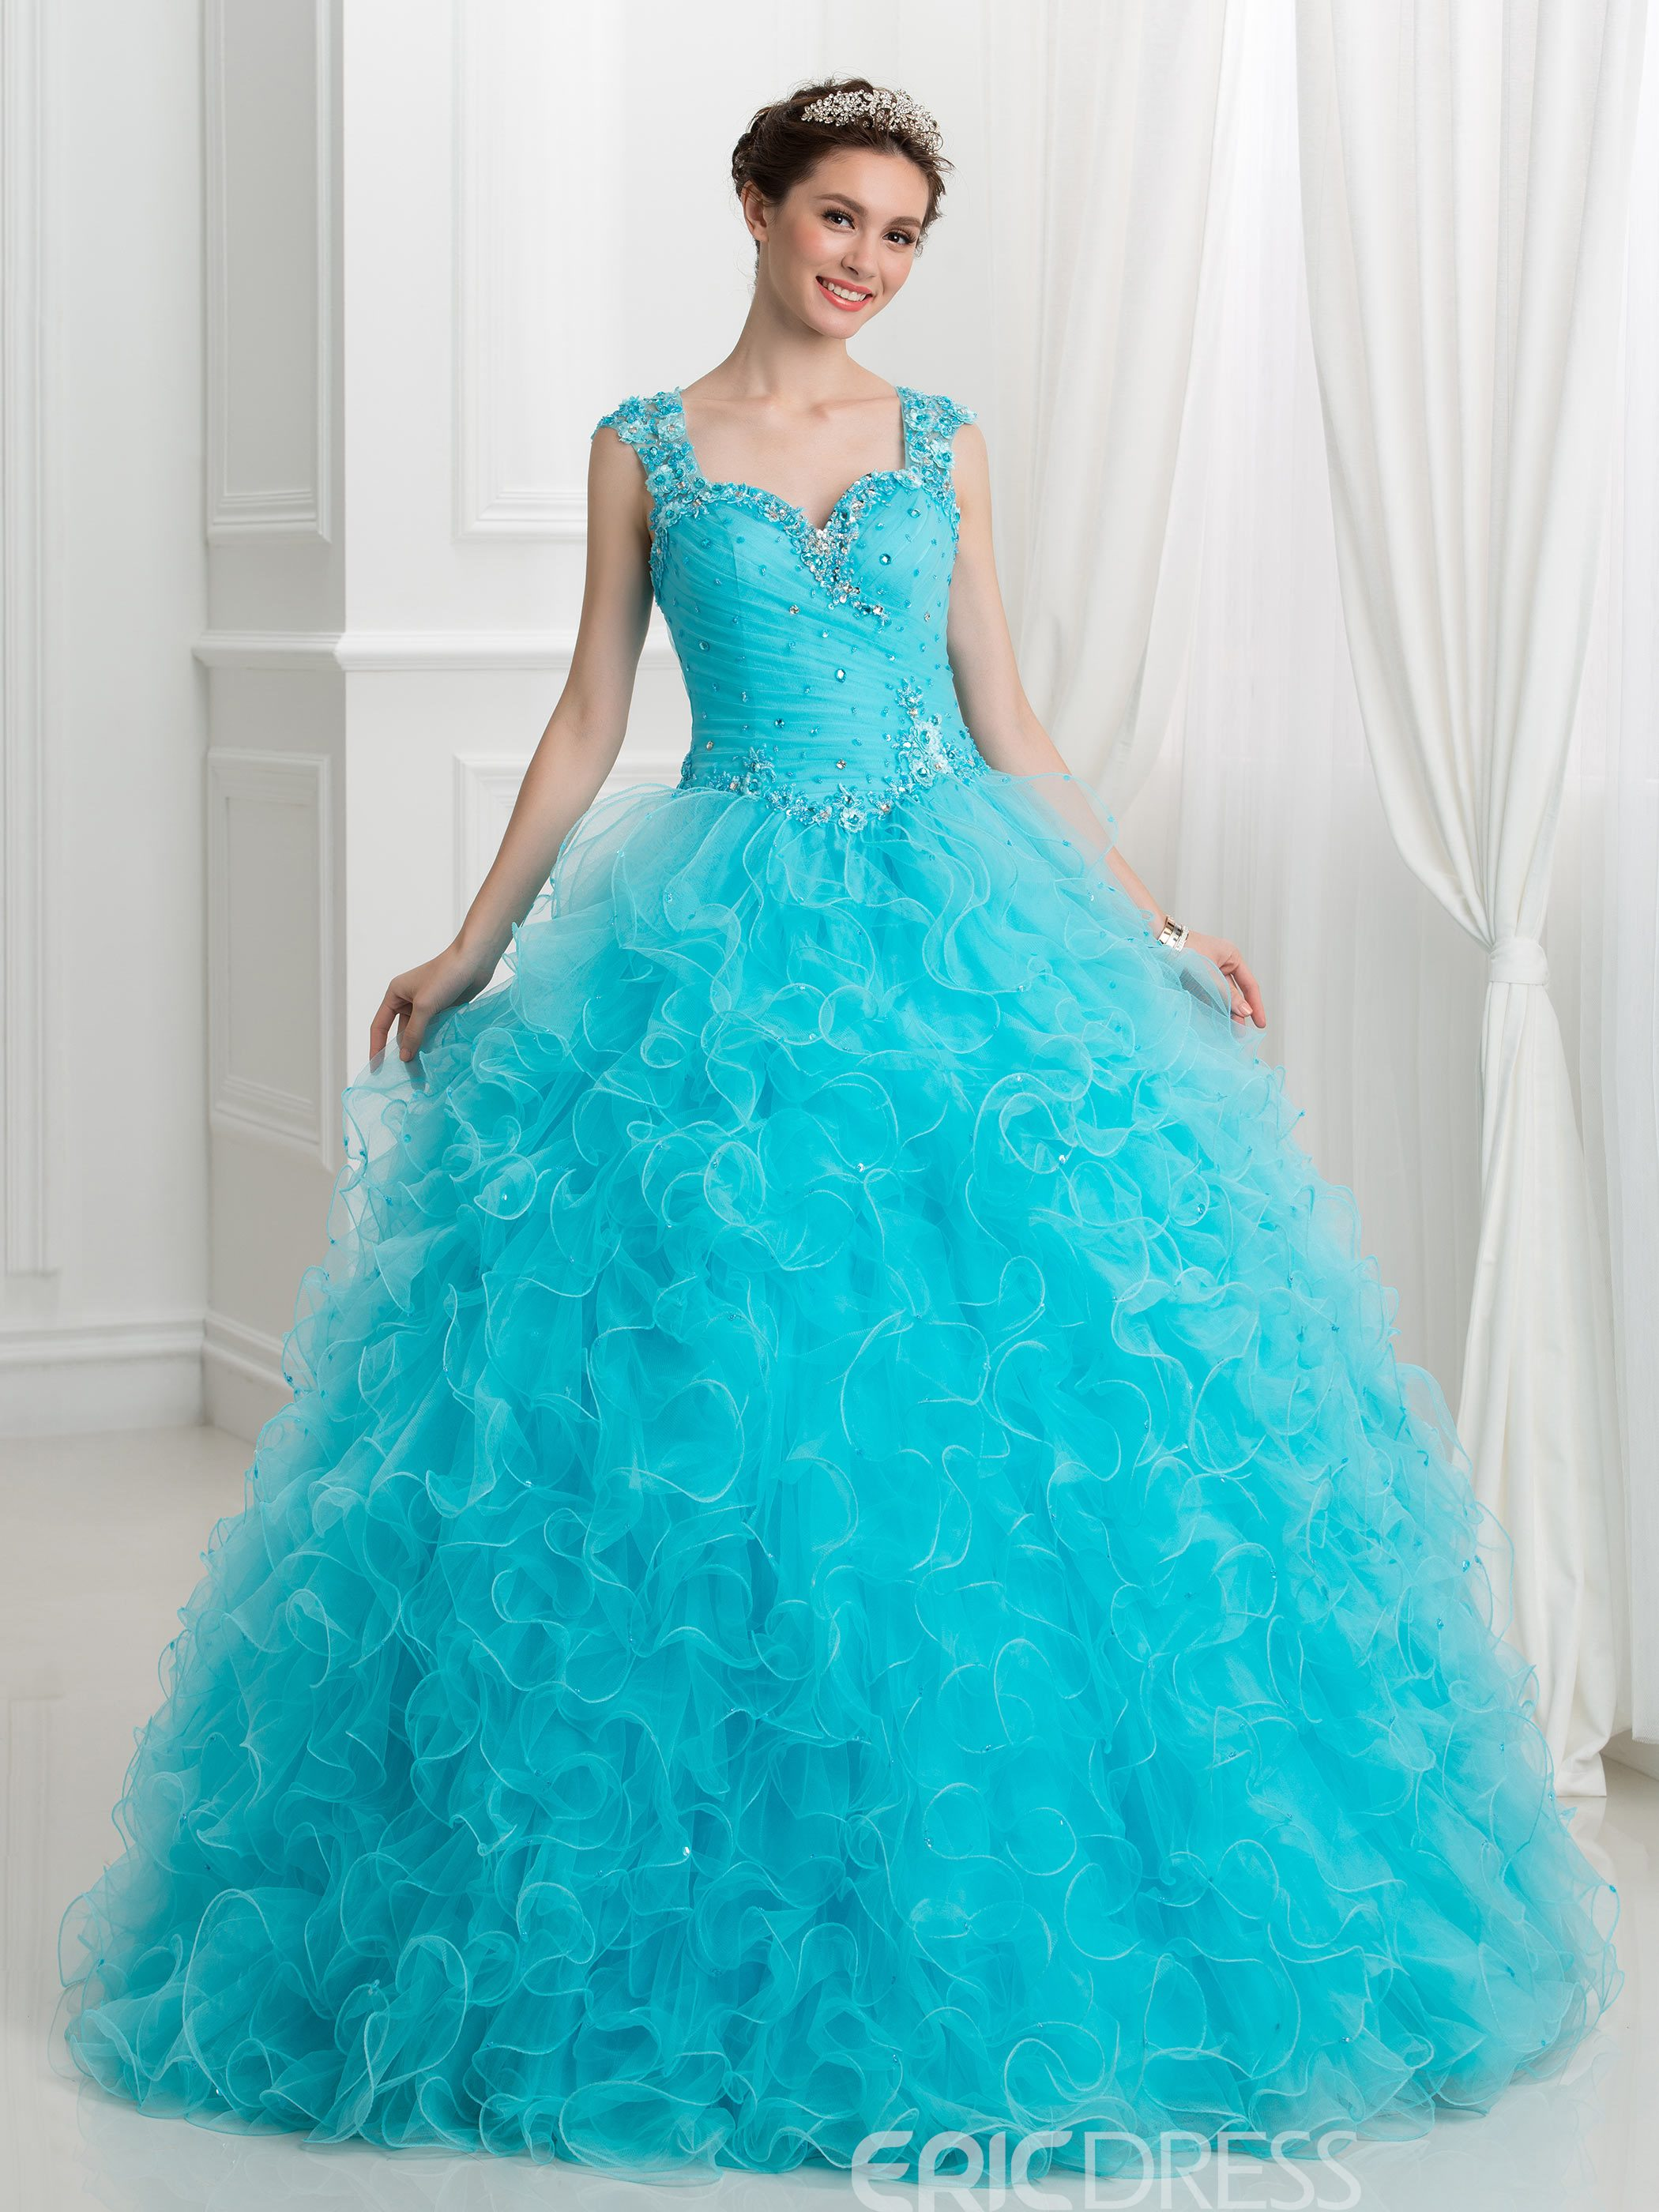 Ericdress Sweetheart Appliques Beaded Ball Gown Quinceanera Dress